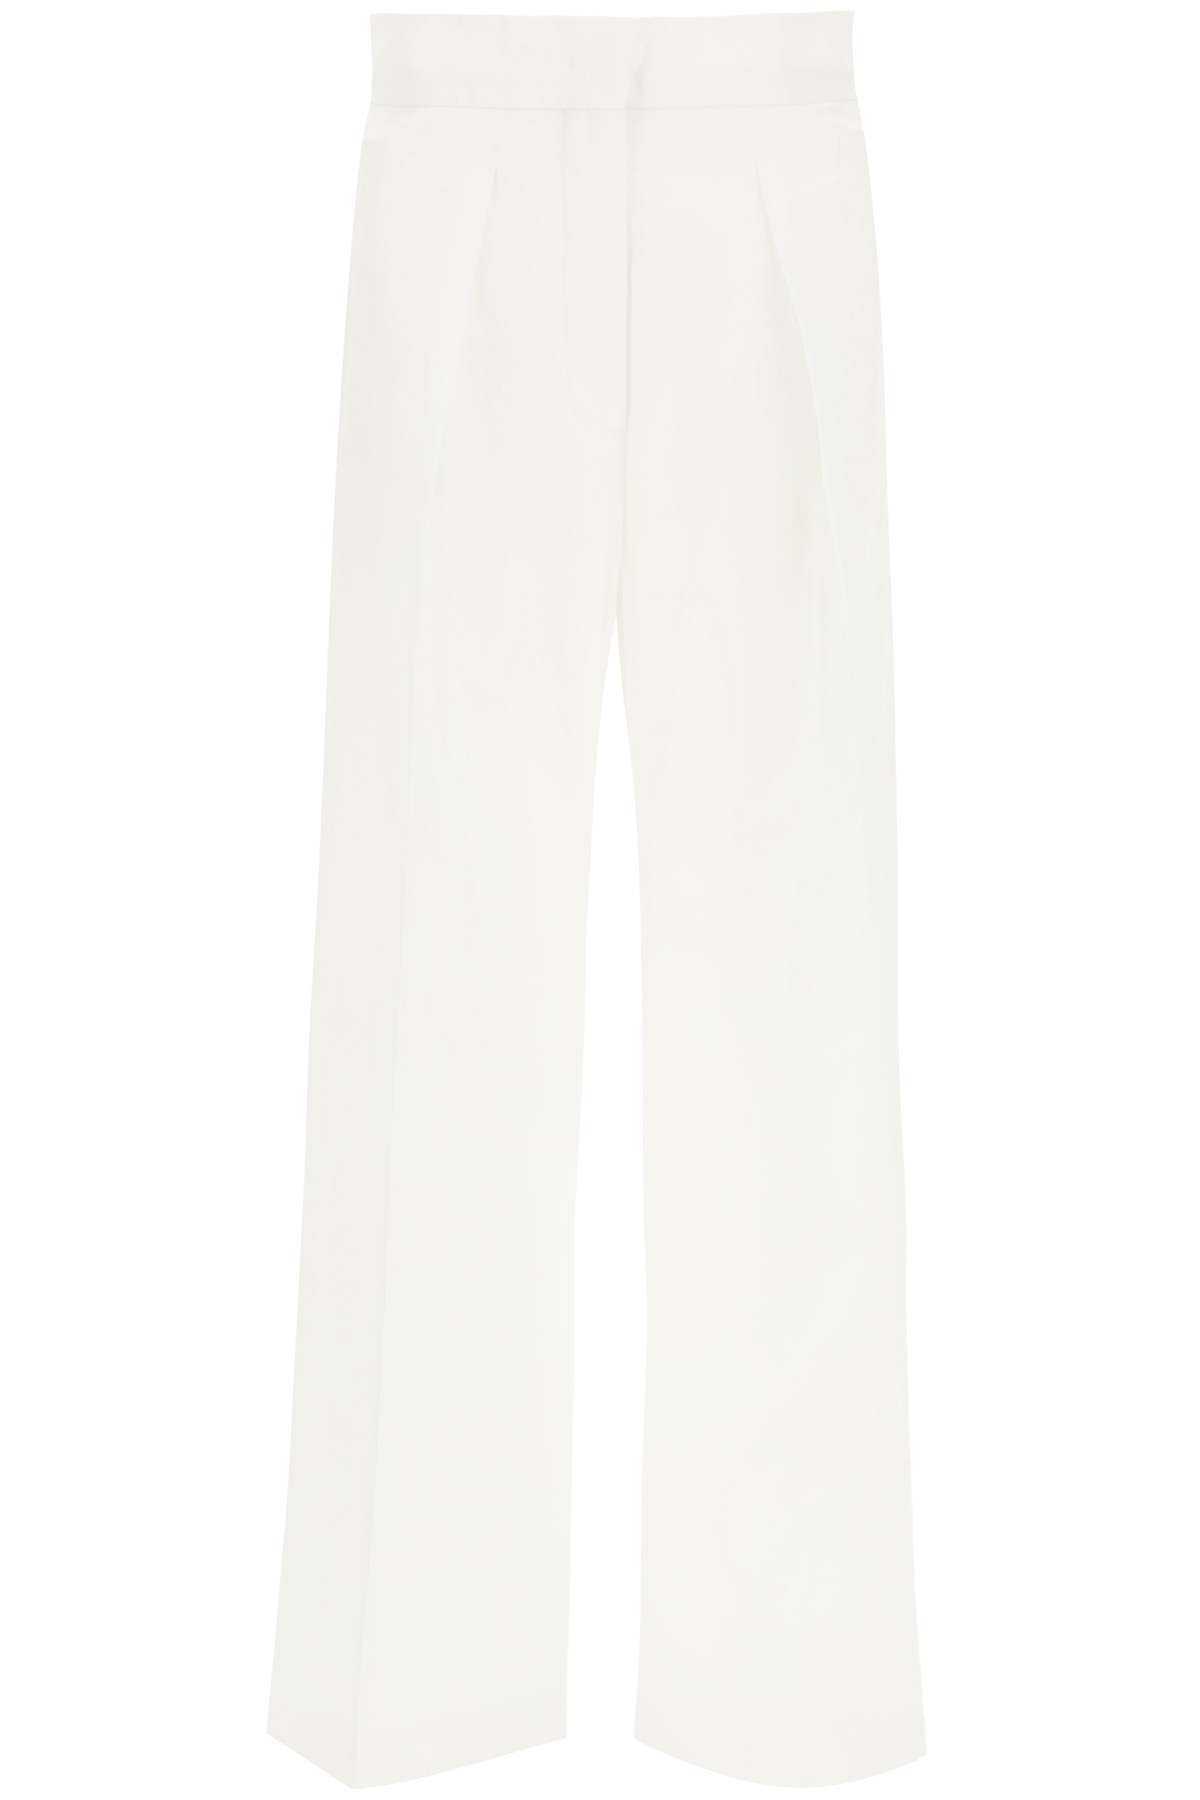 SPORTMAX VISONE COTTON TROUSERS 40 White Cotton